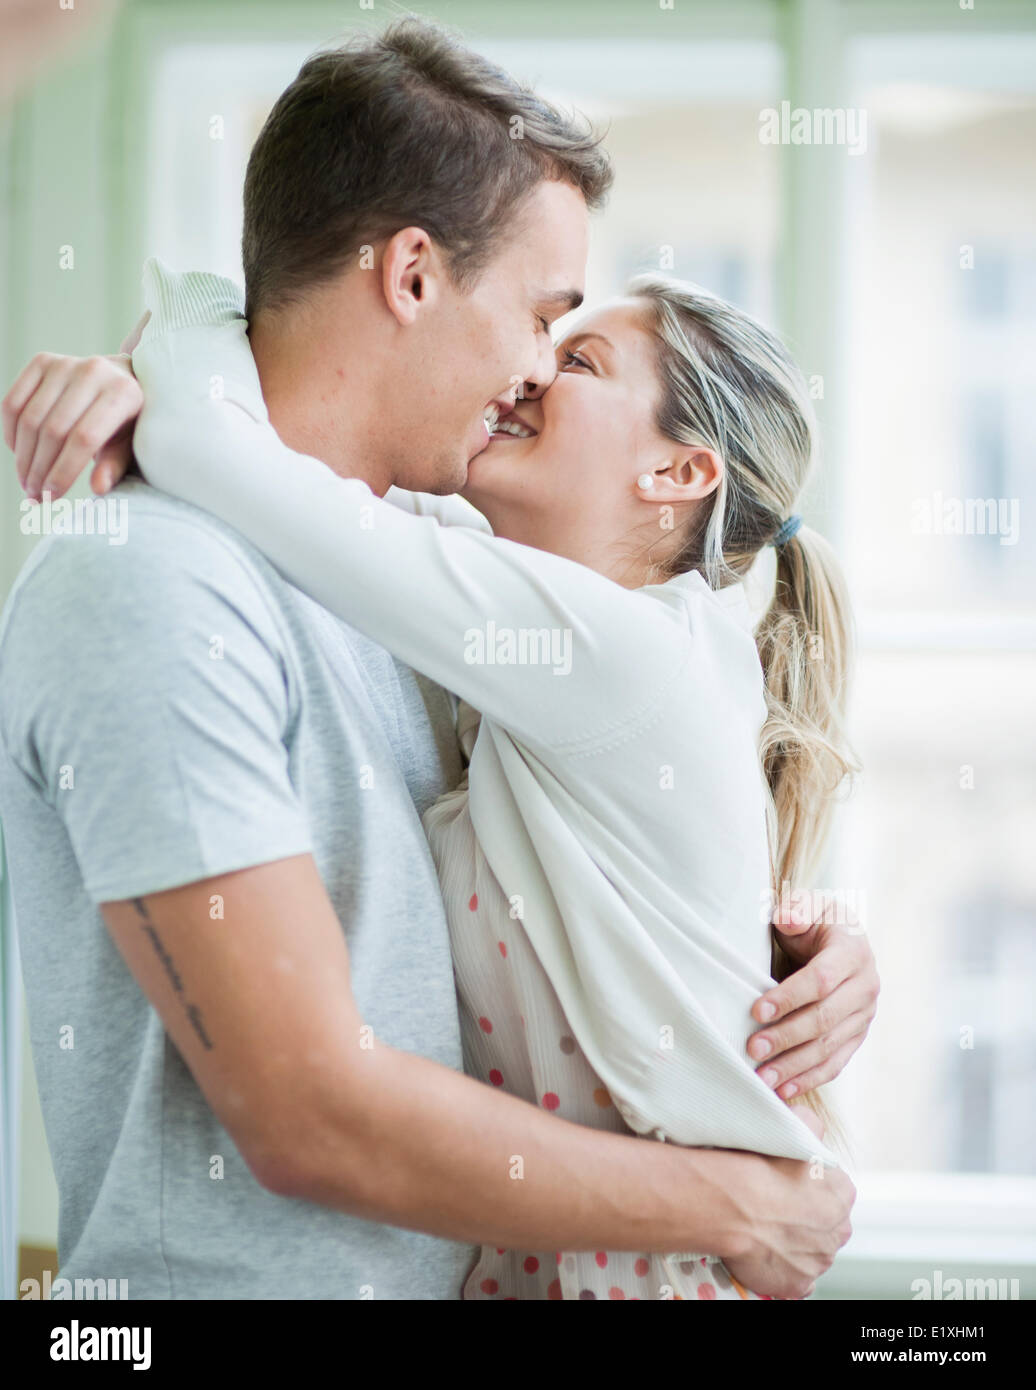 Loving couple kissing while hugging in house - Stock Image